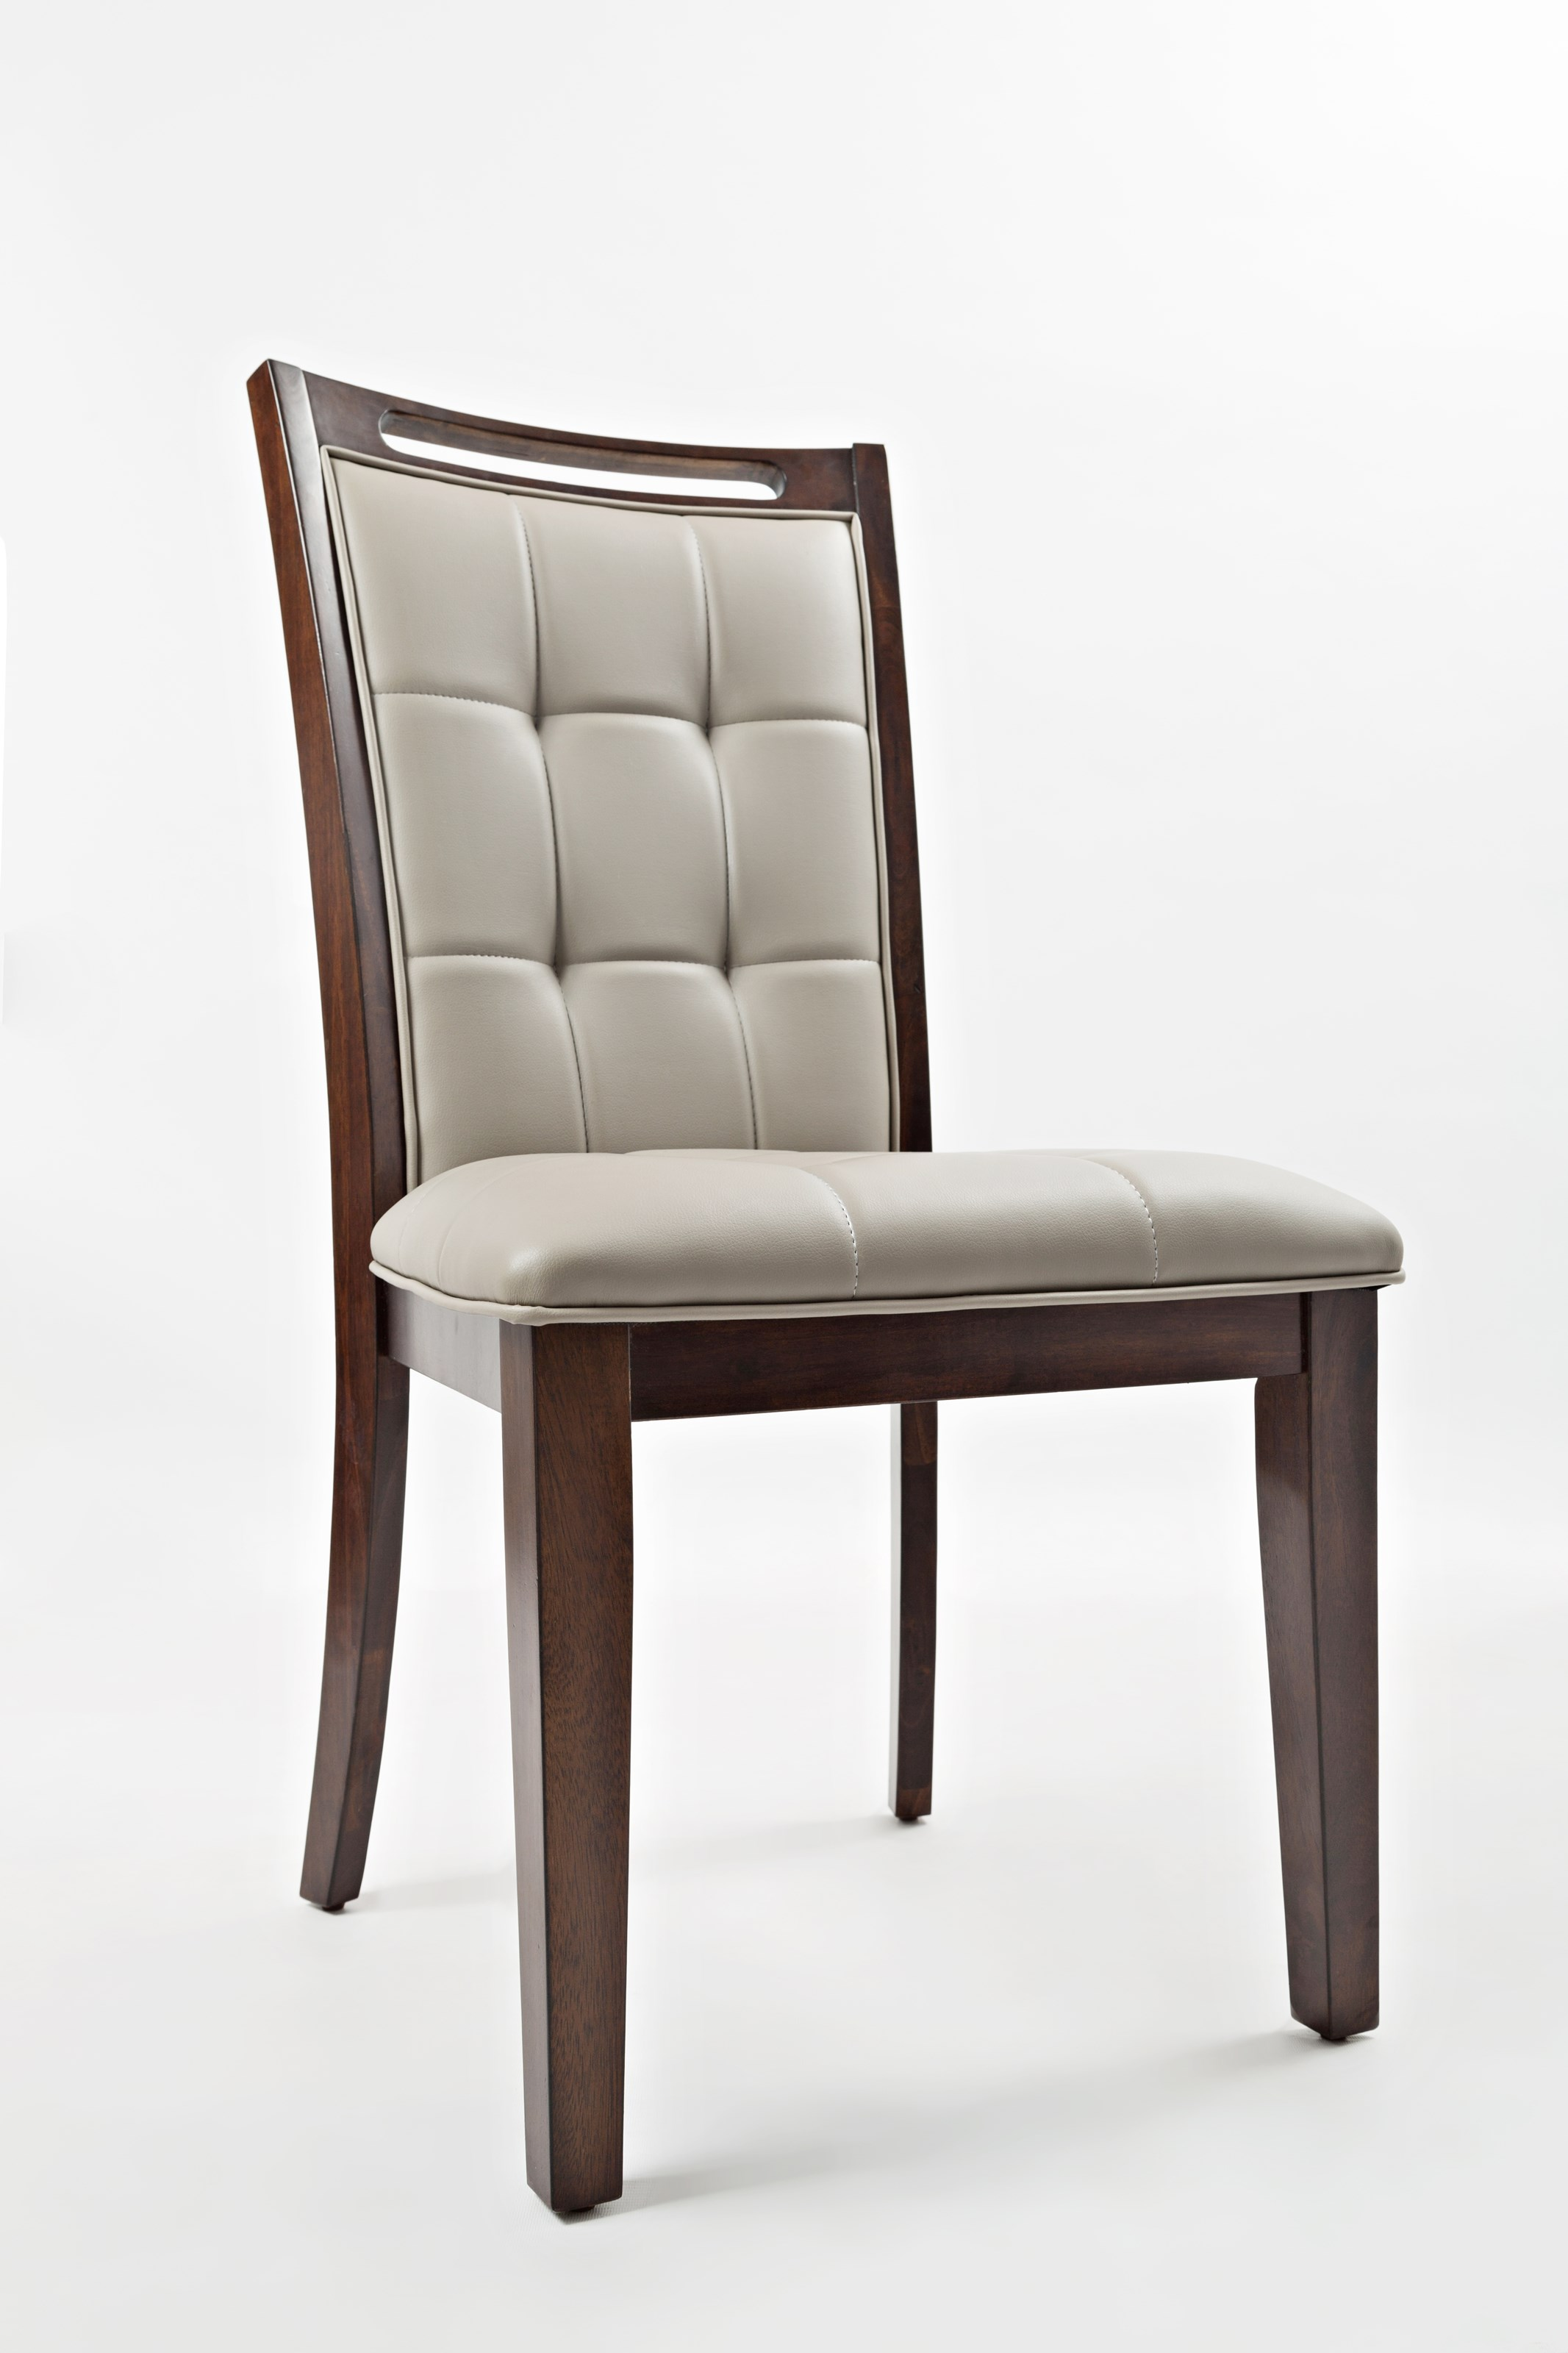 Jofran Manchester Upholstered Dining Chair  Stuckey